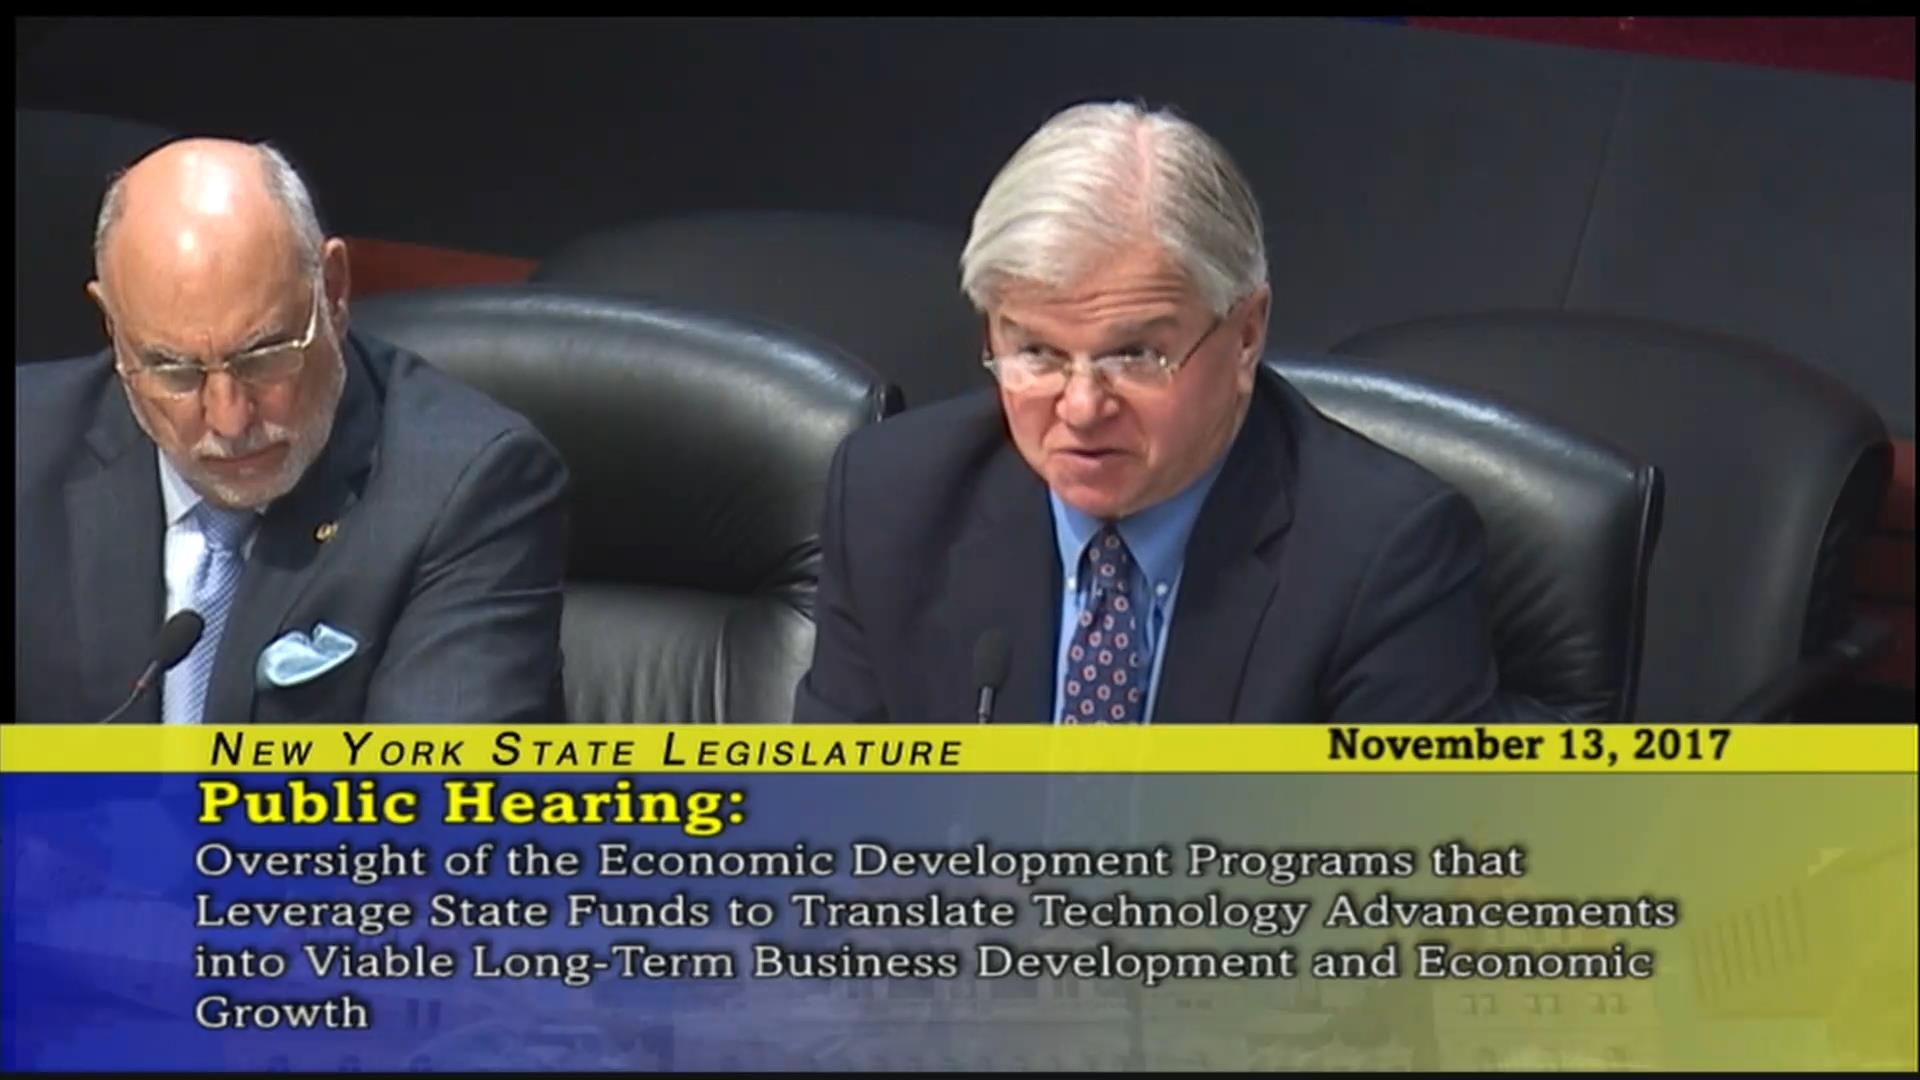 Oversight Economic Development Public Hearing